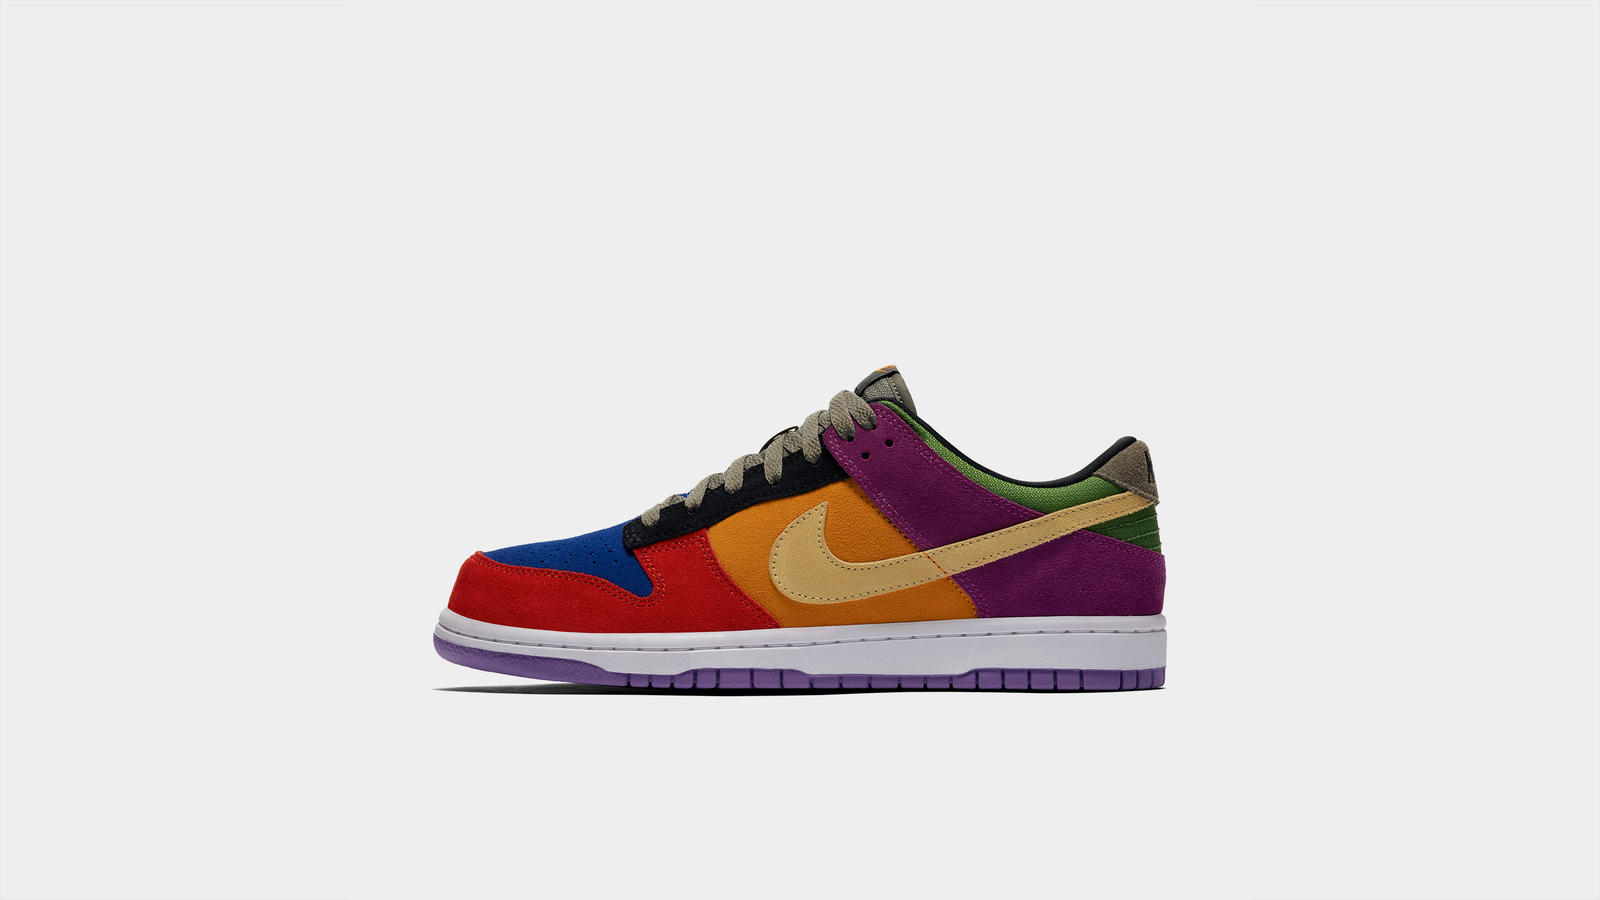 Nike Dunk Viotech 2019 Official Images and Release Date 7